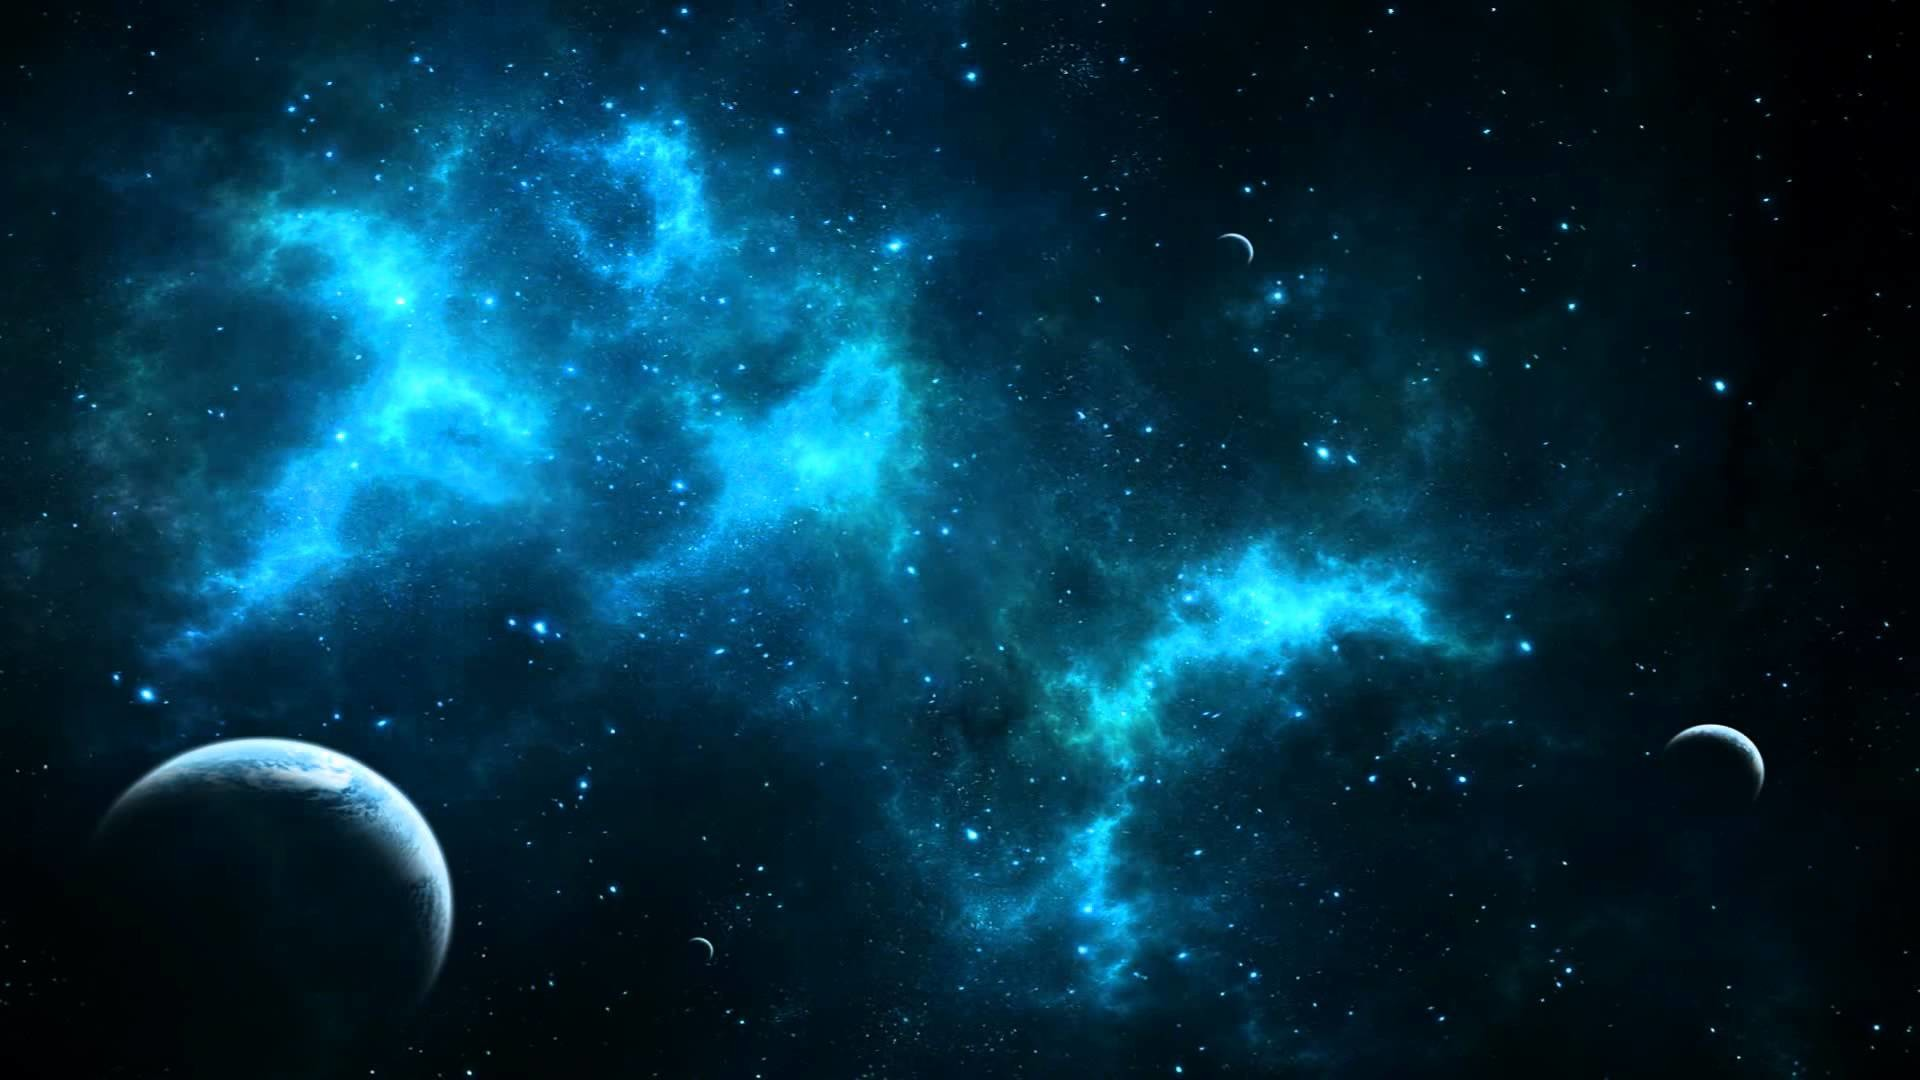 Space Animated Wallpaper 67 Images